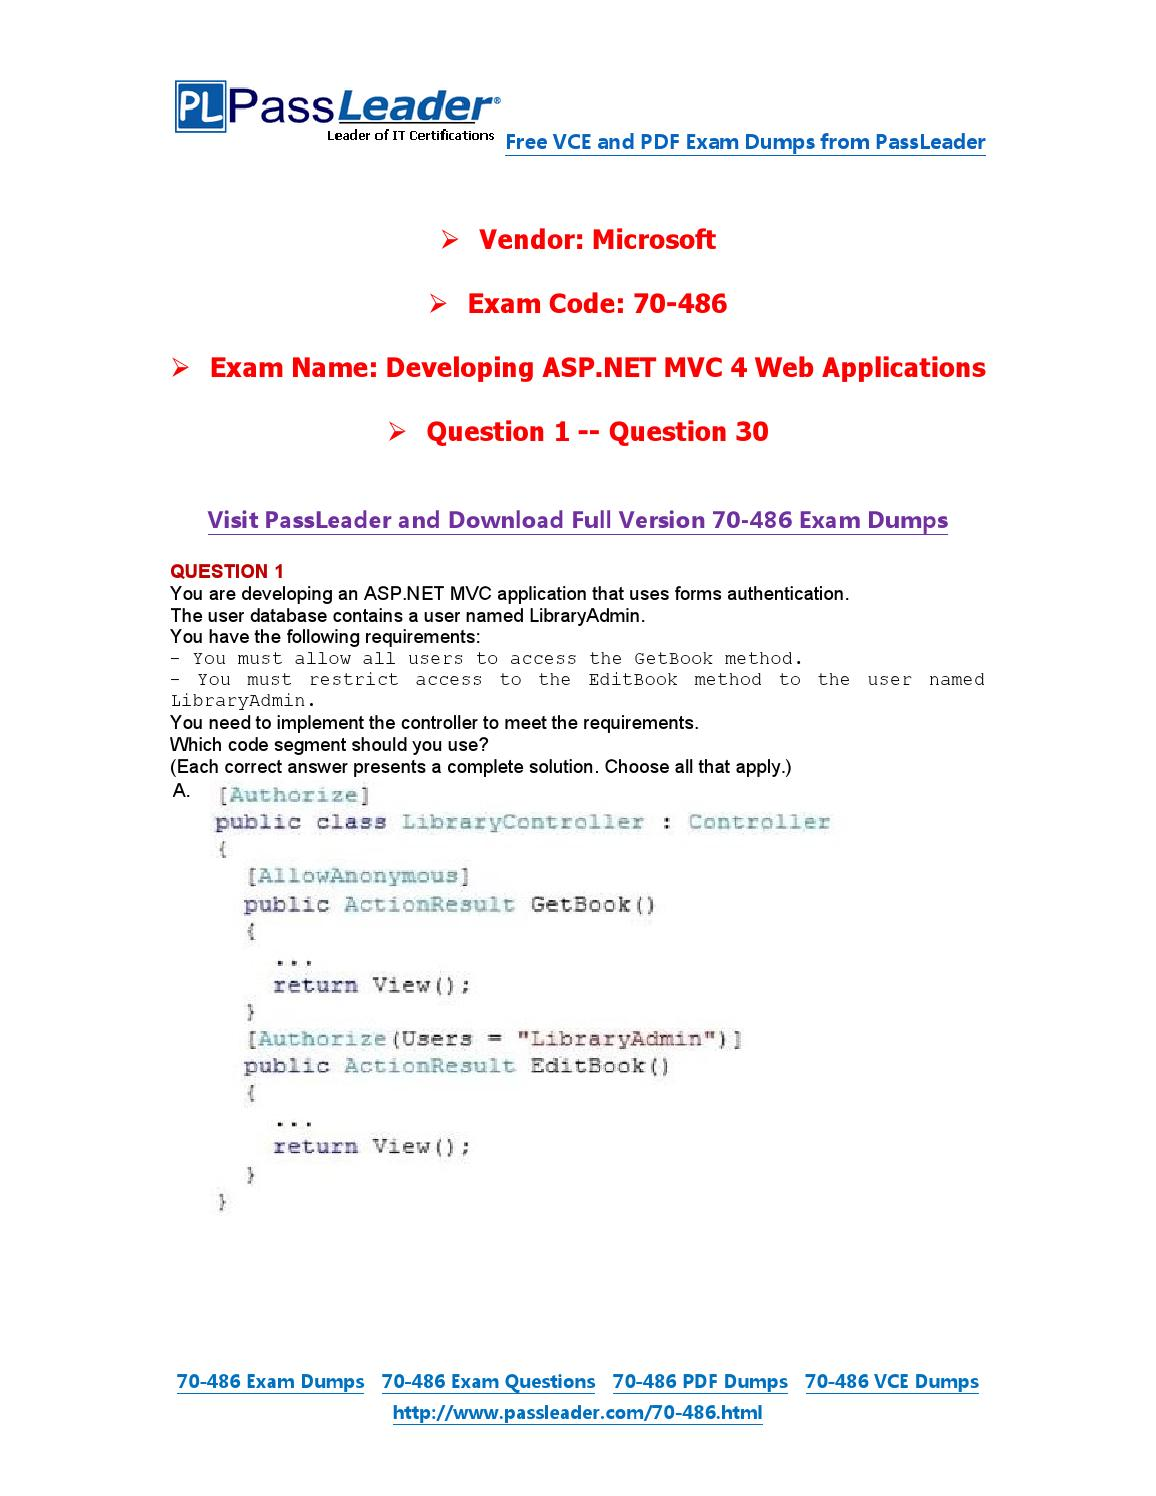 70 486 exam dumps with pdf and vce download 1 30 by passleader 70 486 exam dumps with pdf and vce download 1 30 by passleader issuu xflitez Image collections